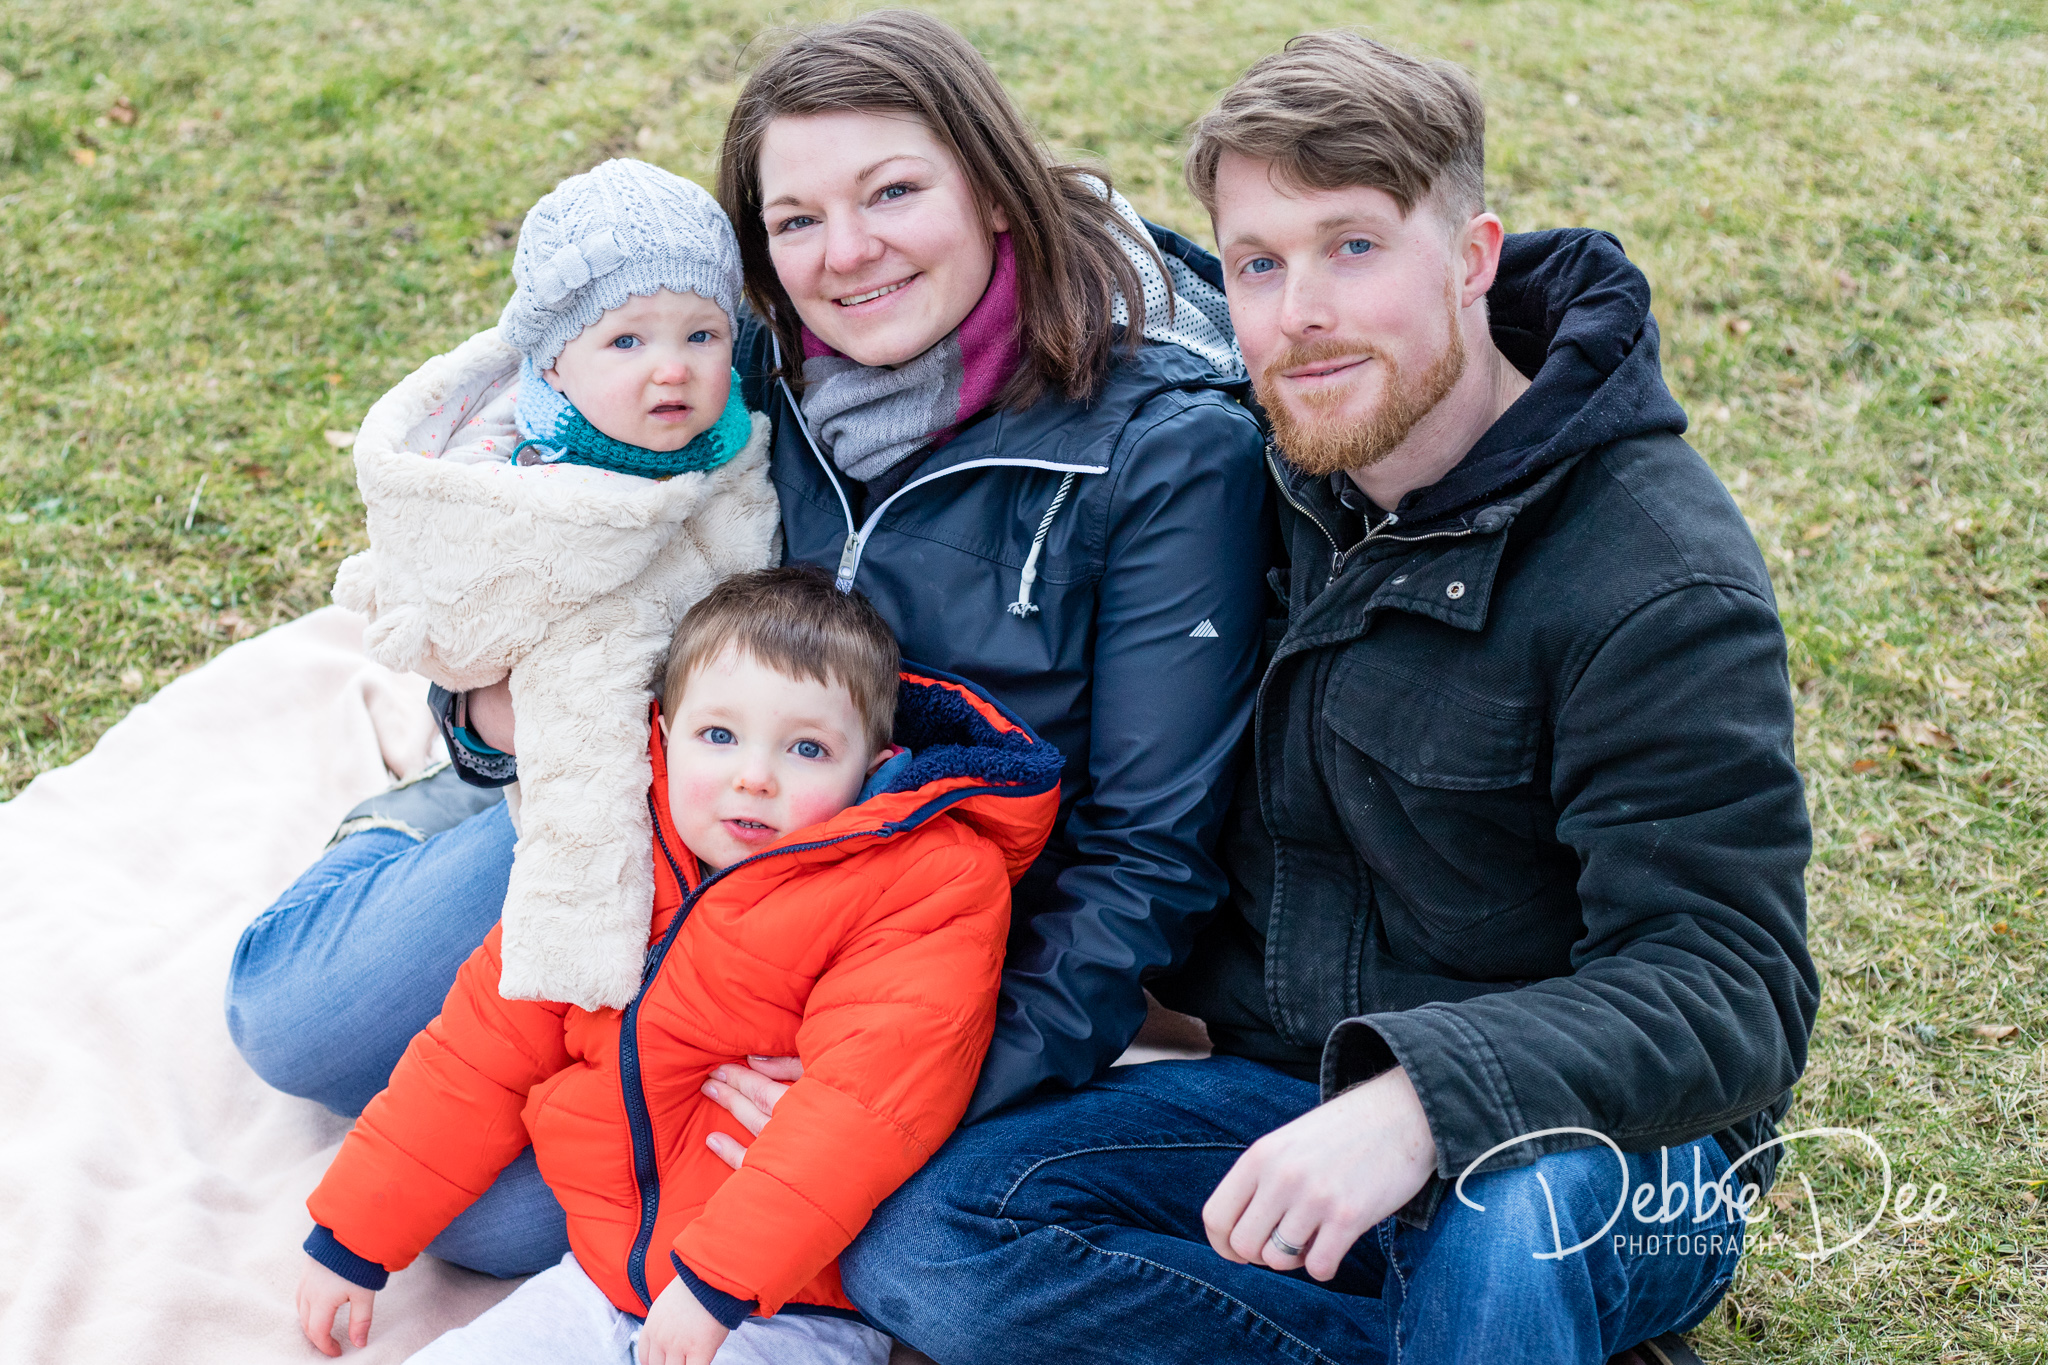 Family Photography Aberdeenshire - Leith Hall Aberdeenshire - Debbie Dee Photography - Outdoor Family Photography Session - family of four sitting together